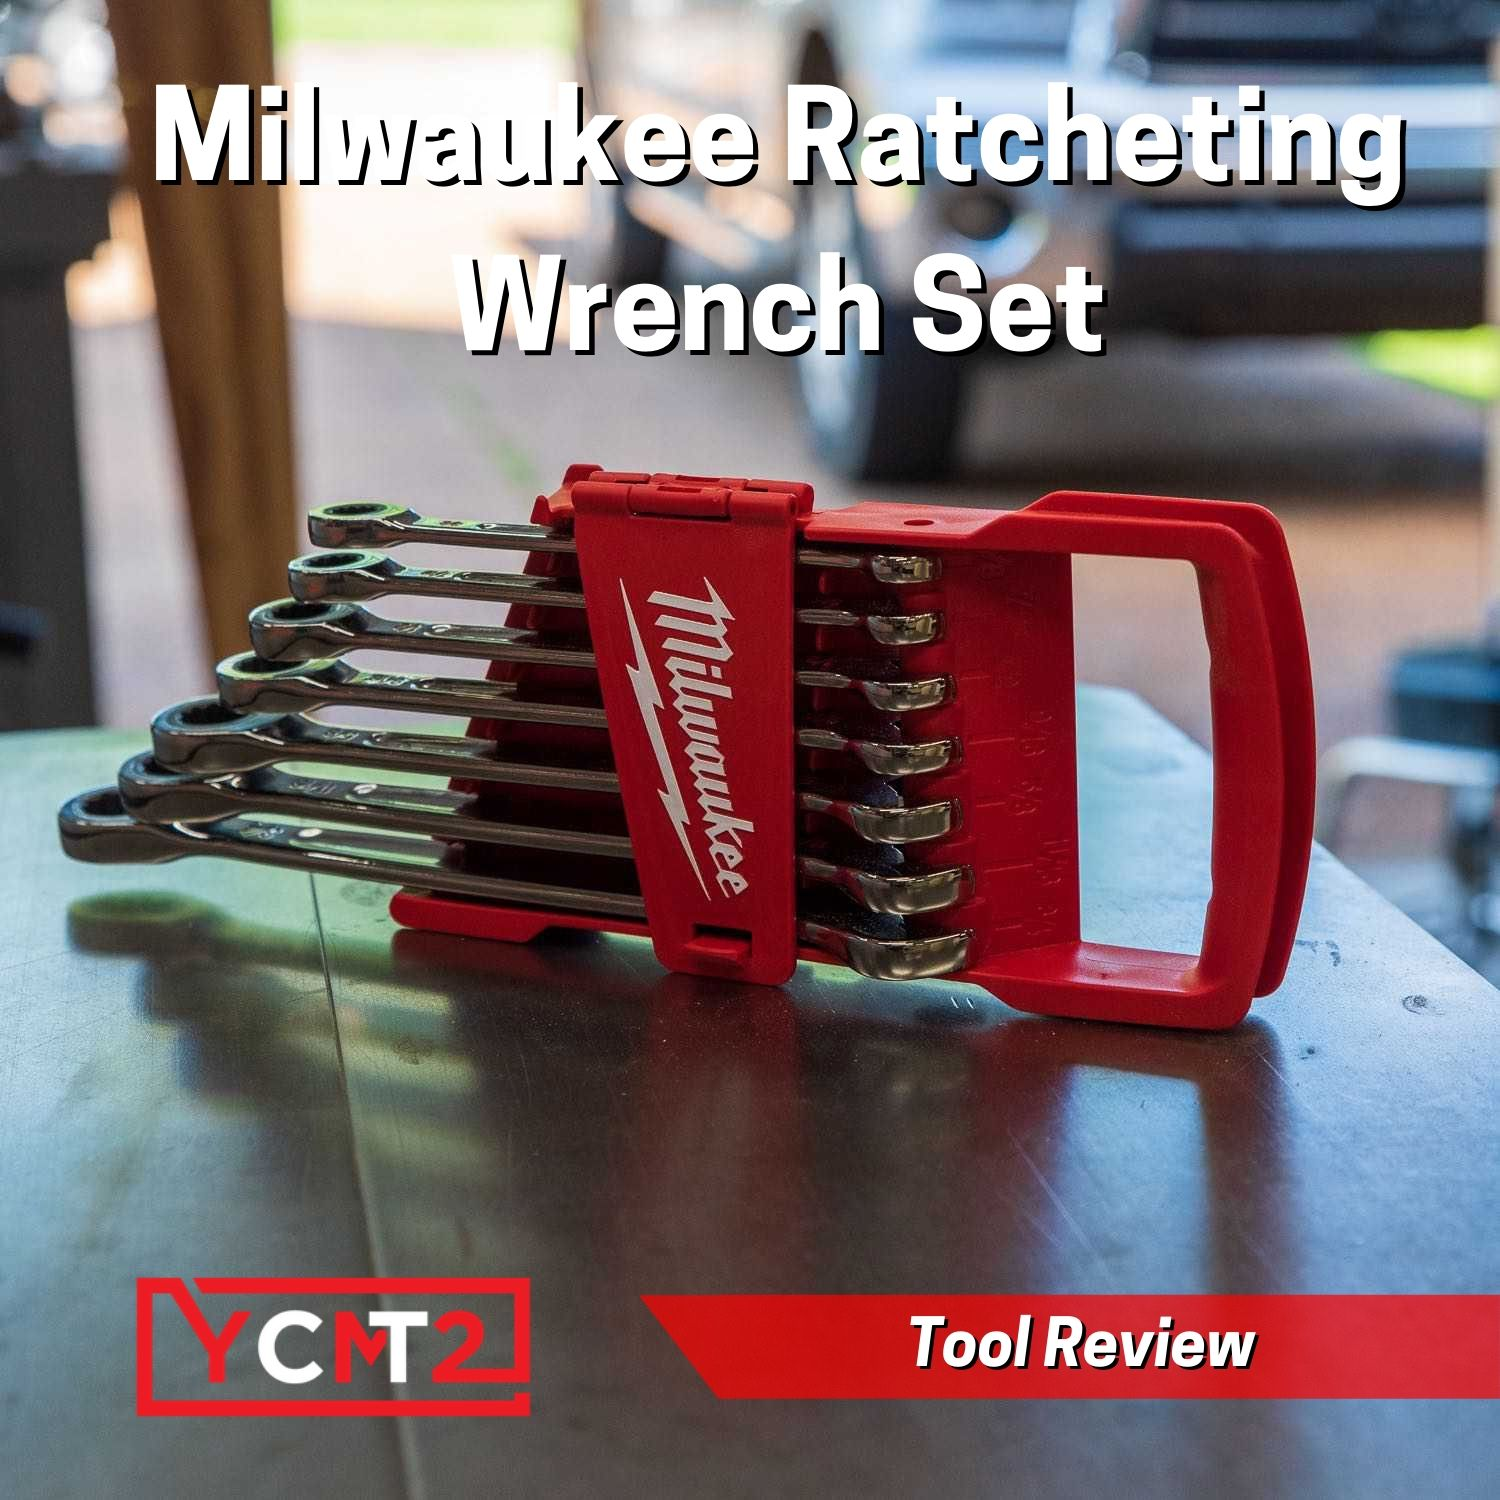 Milwaukee Ratcheting Wrench Set Review